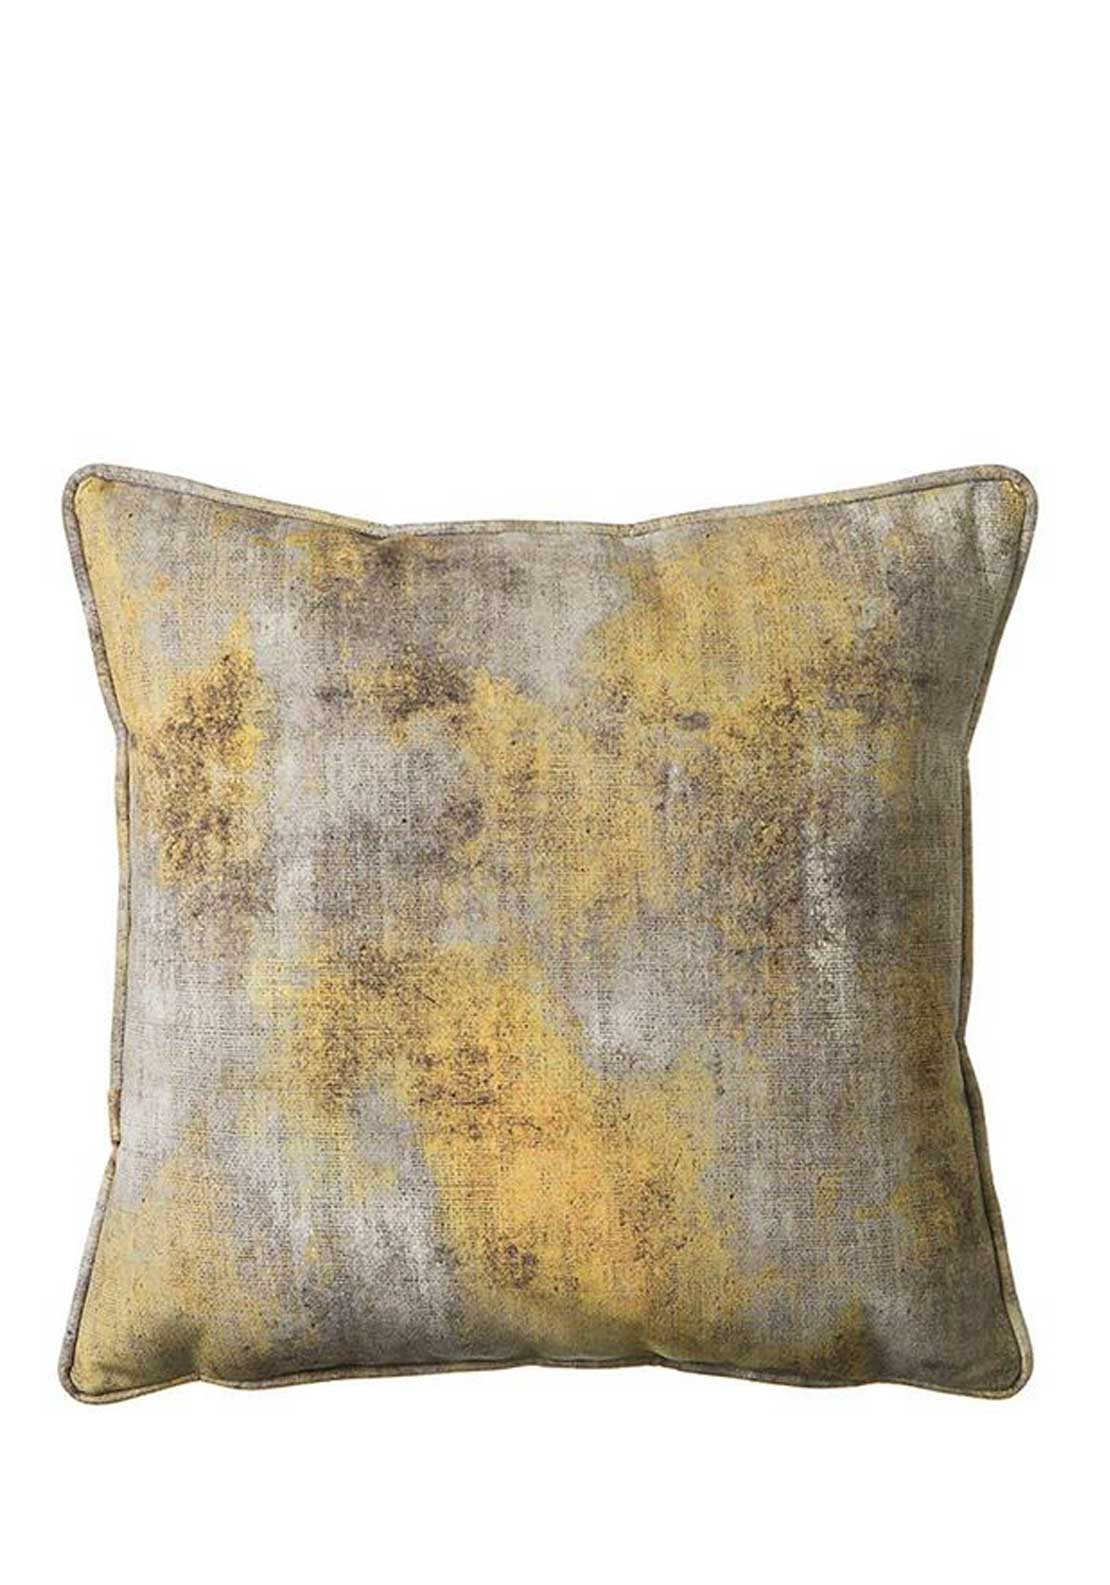 Scatterbox Mood Cushion, 45 x 45cm, Ochre Multi